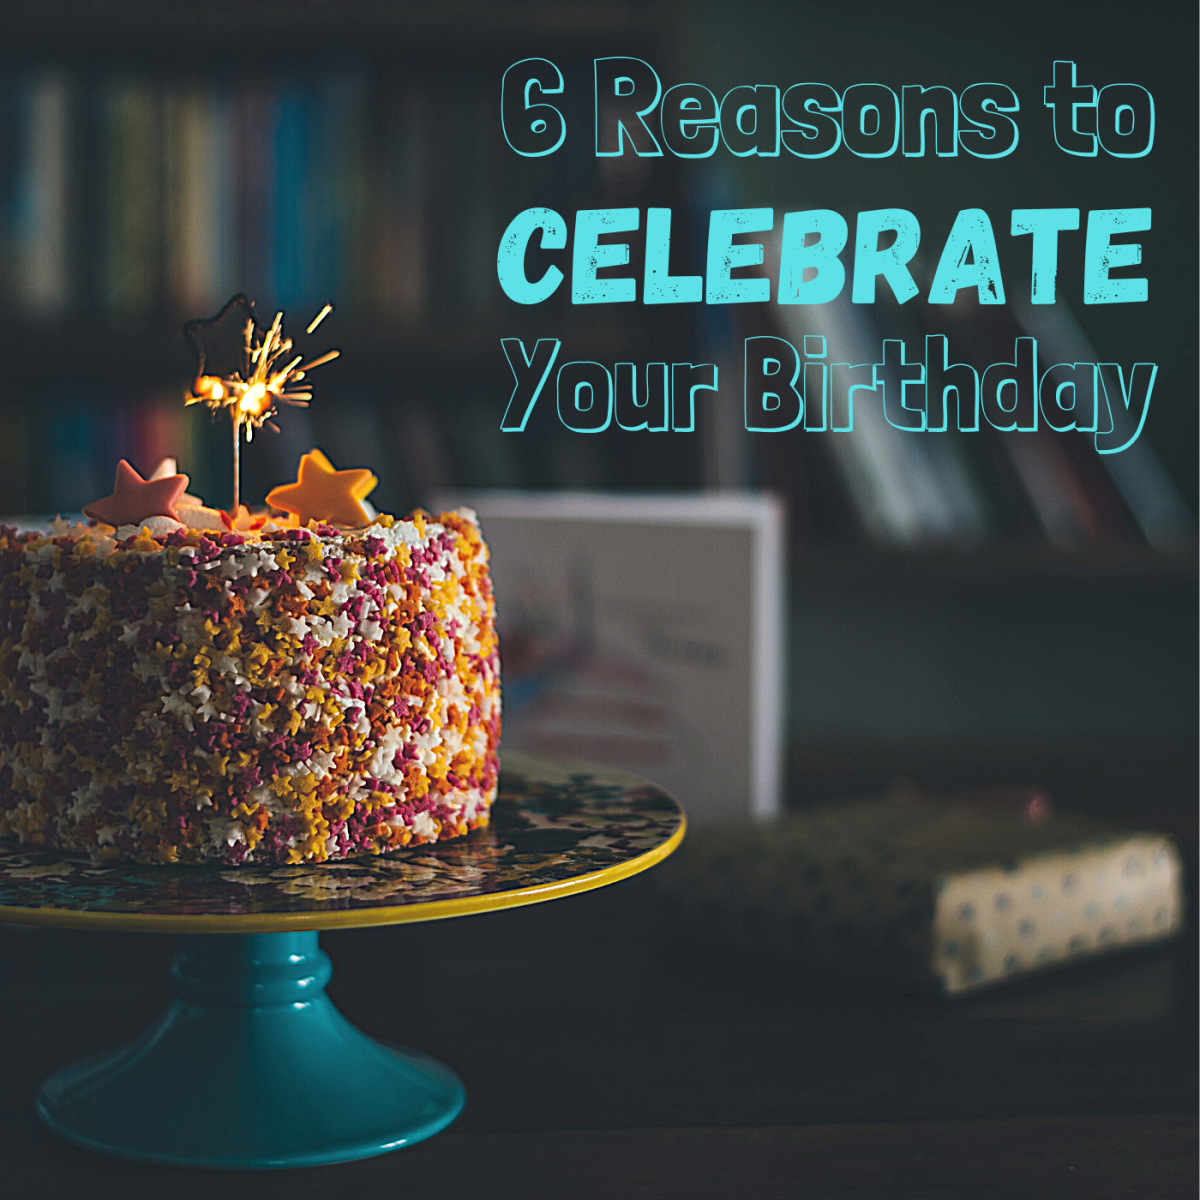 Why should you celebrate your big day? Here are six great reasons.